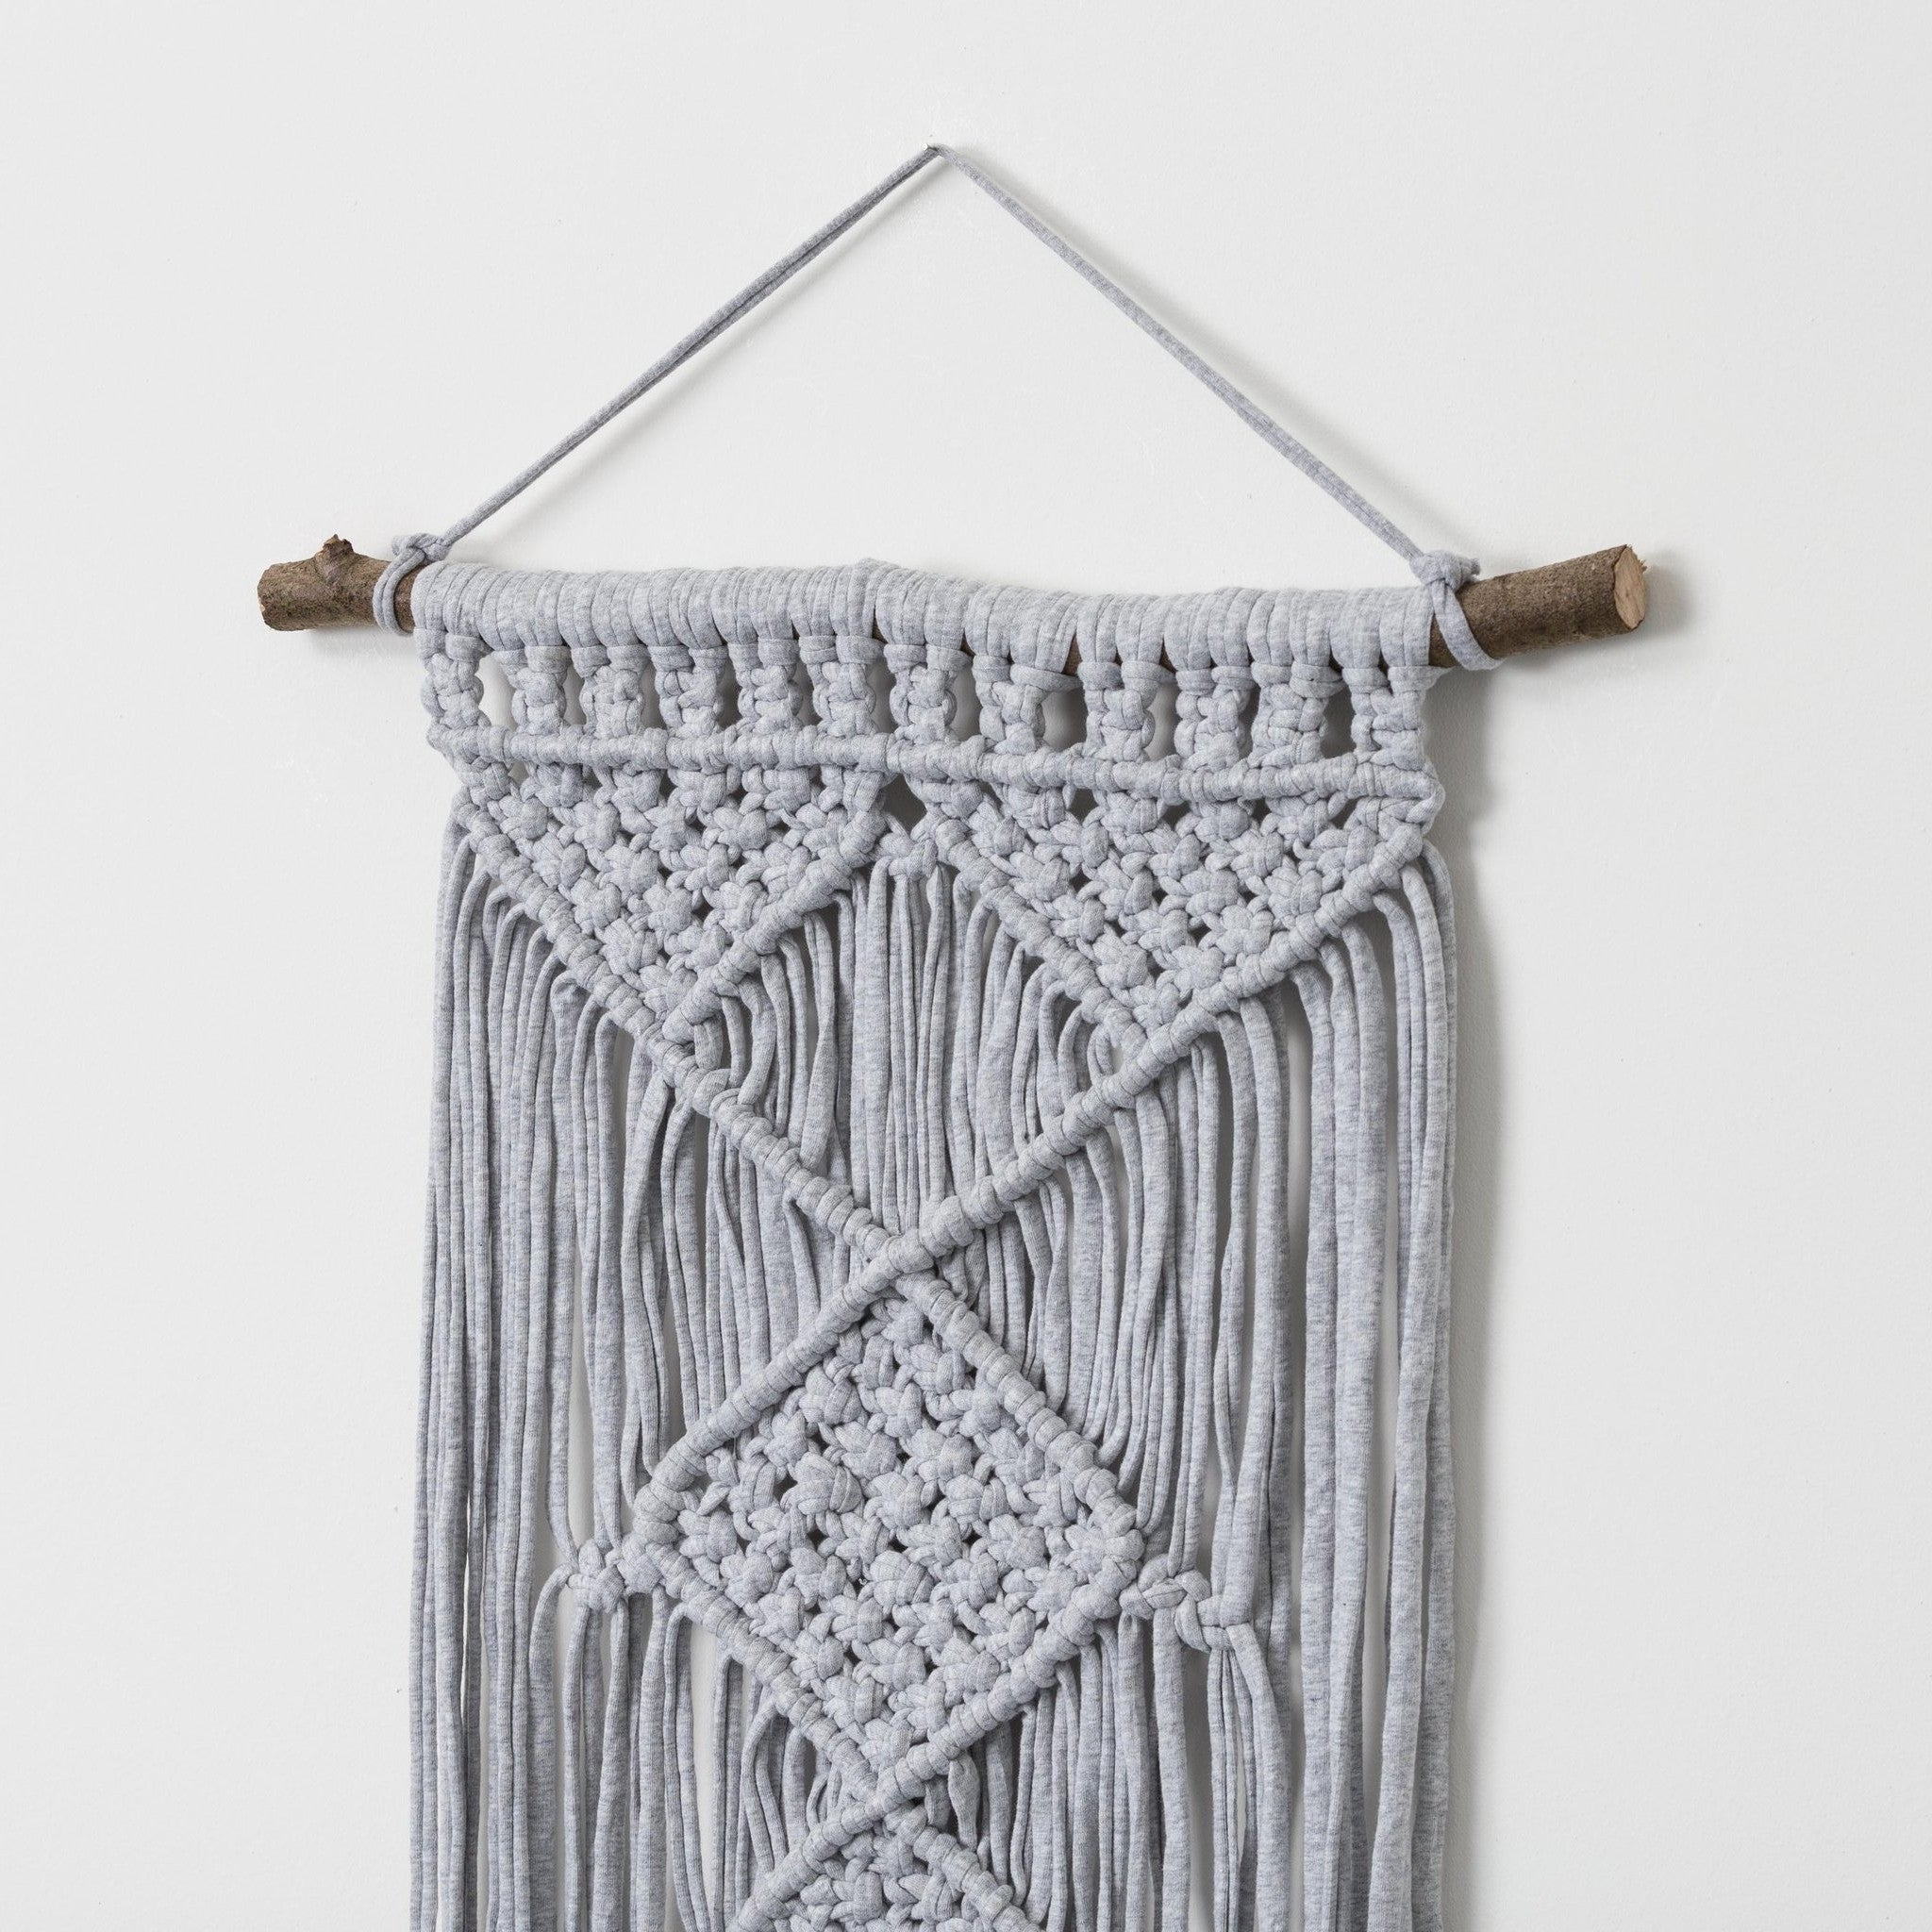 Diamond macrame wall hanging - Mara studio